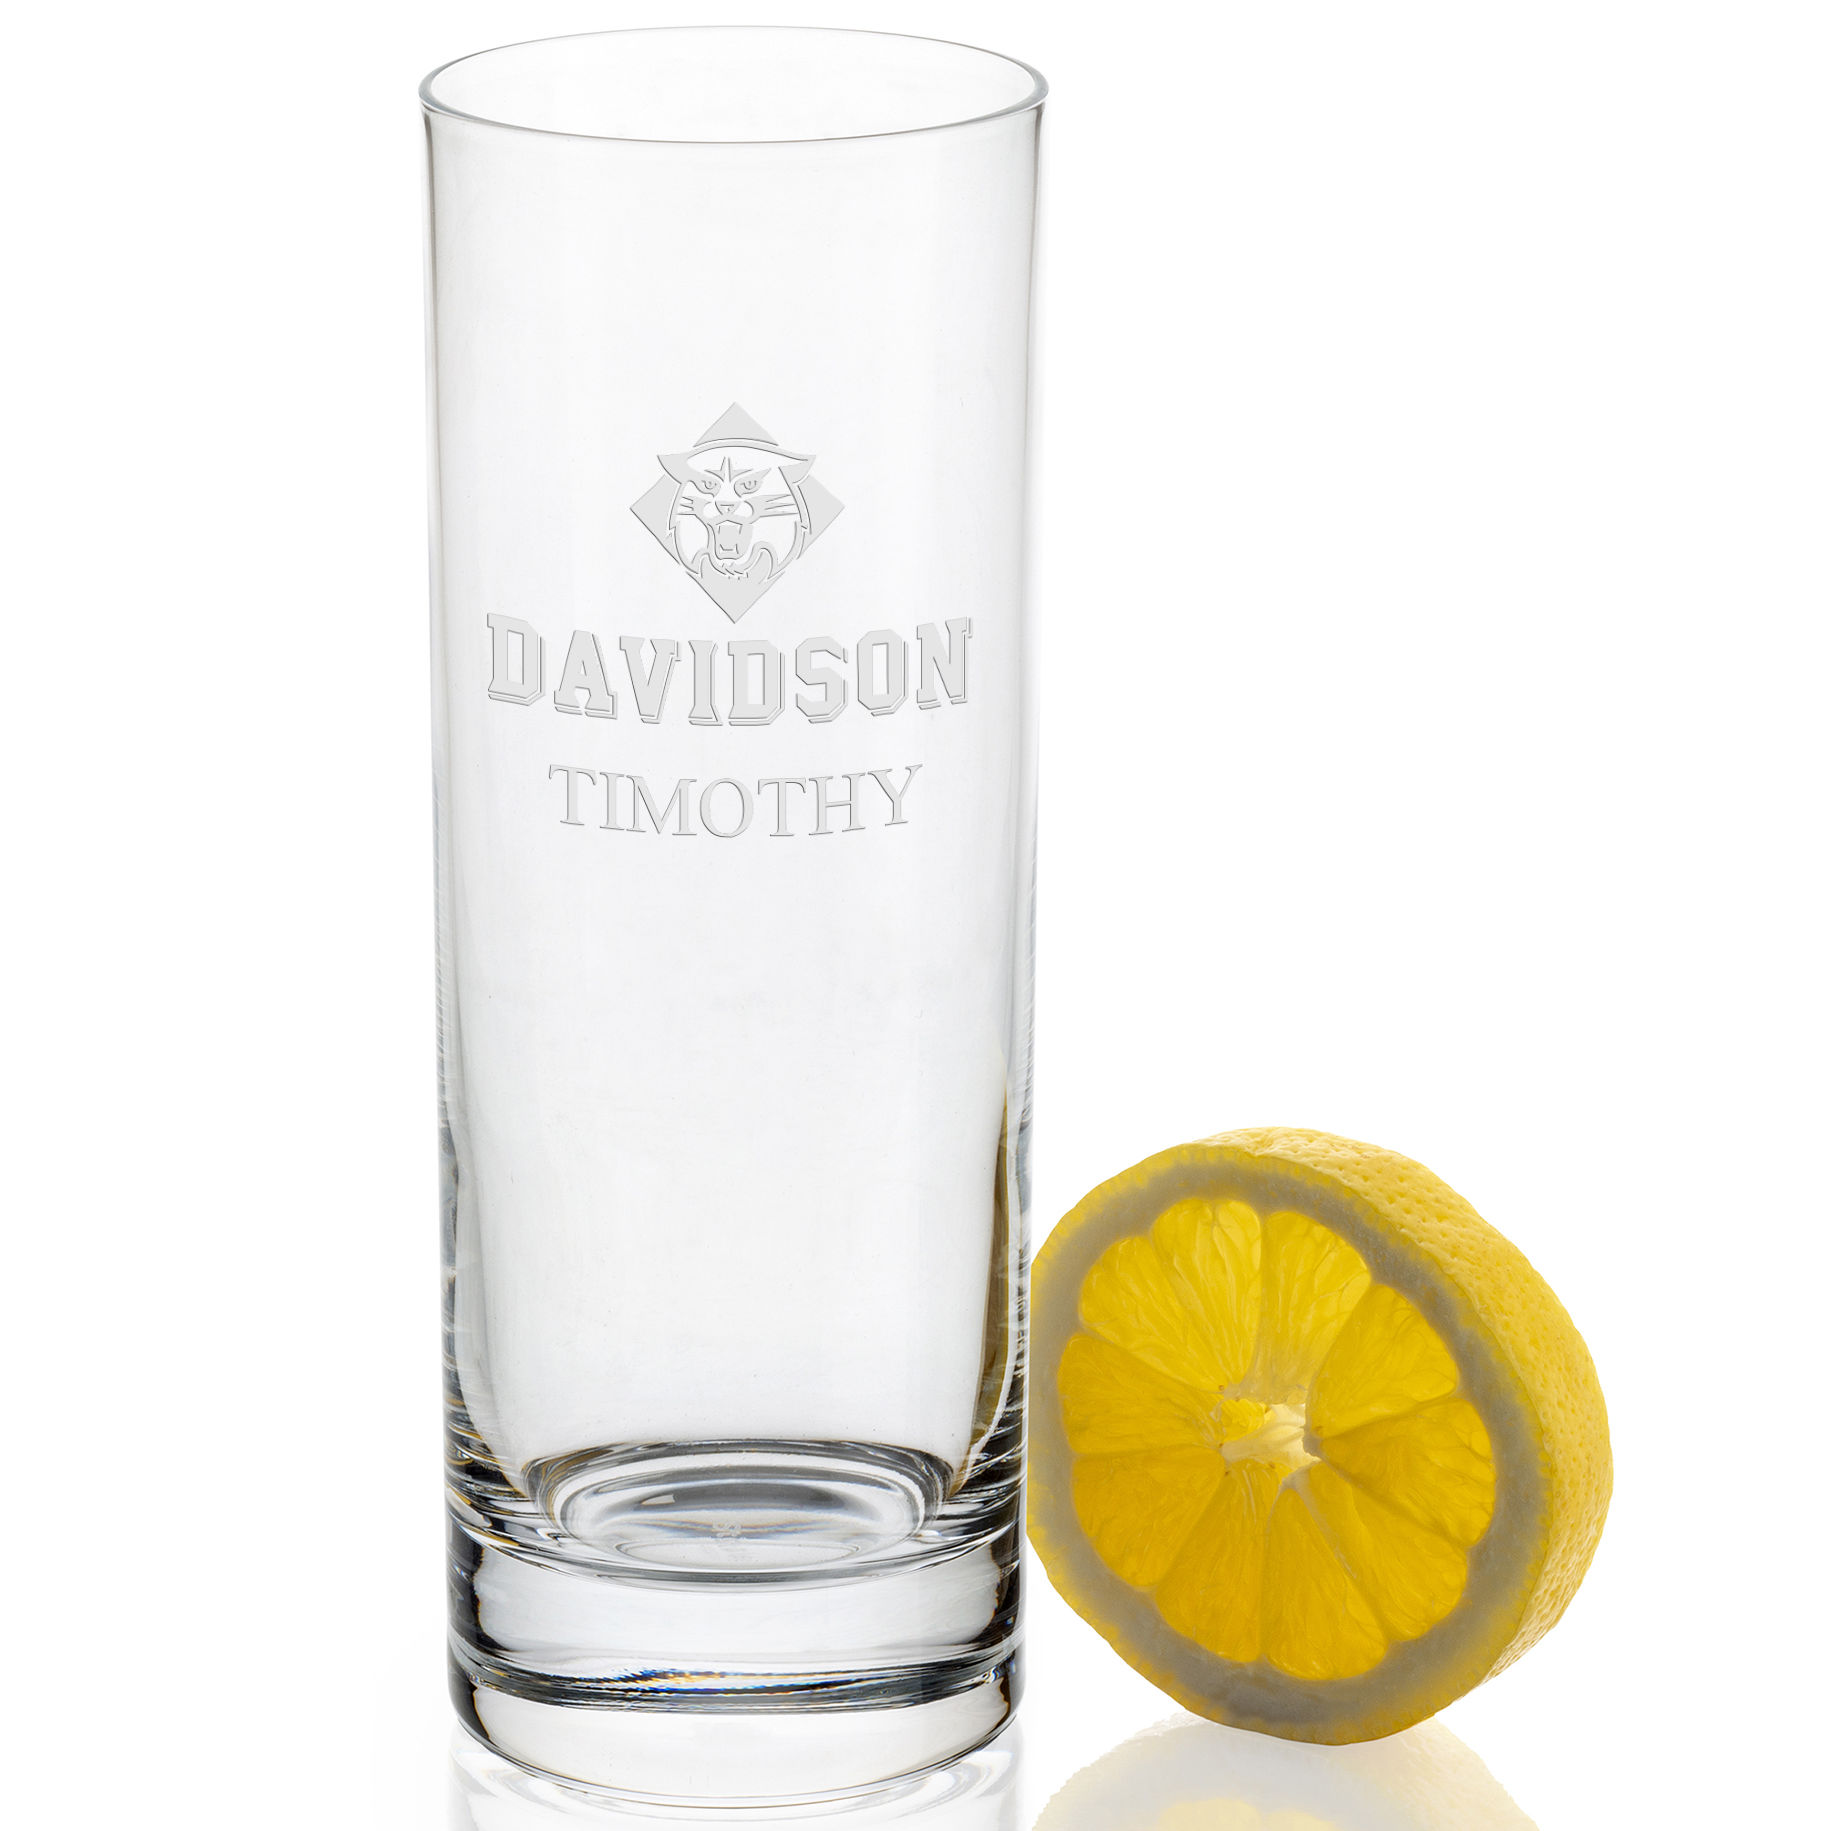 Davidson College Iced Beverage Glasses - Set of 4 - Image 2